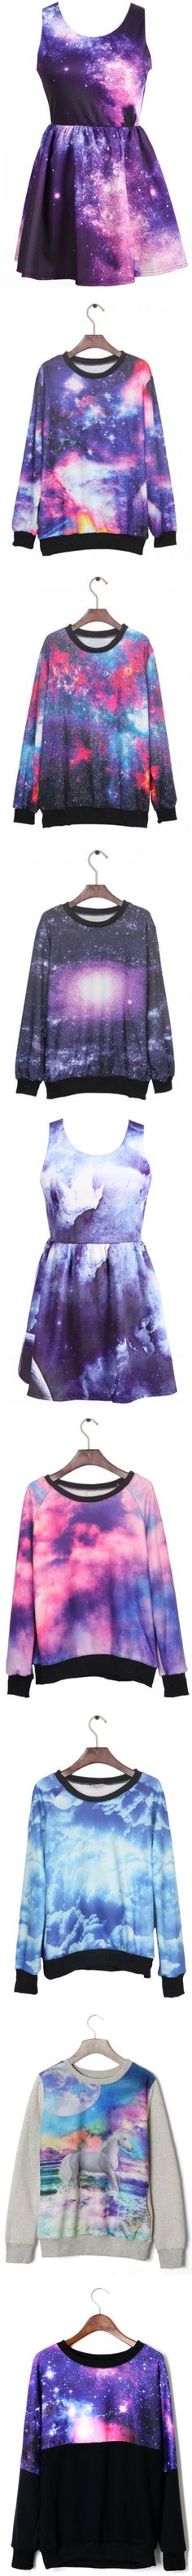 """Surprisingly, I love the galaxy print. """"Udobuy galaxy items"""" by udobuy ❤ liked on Polyvore"""